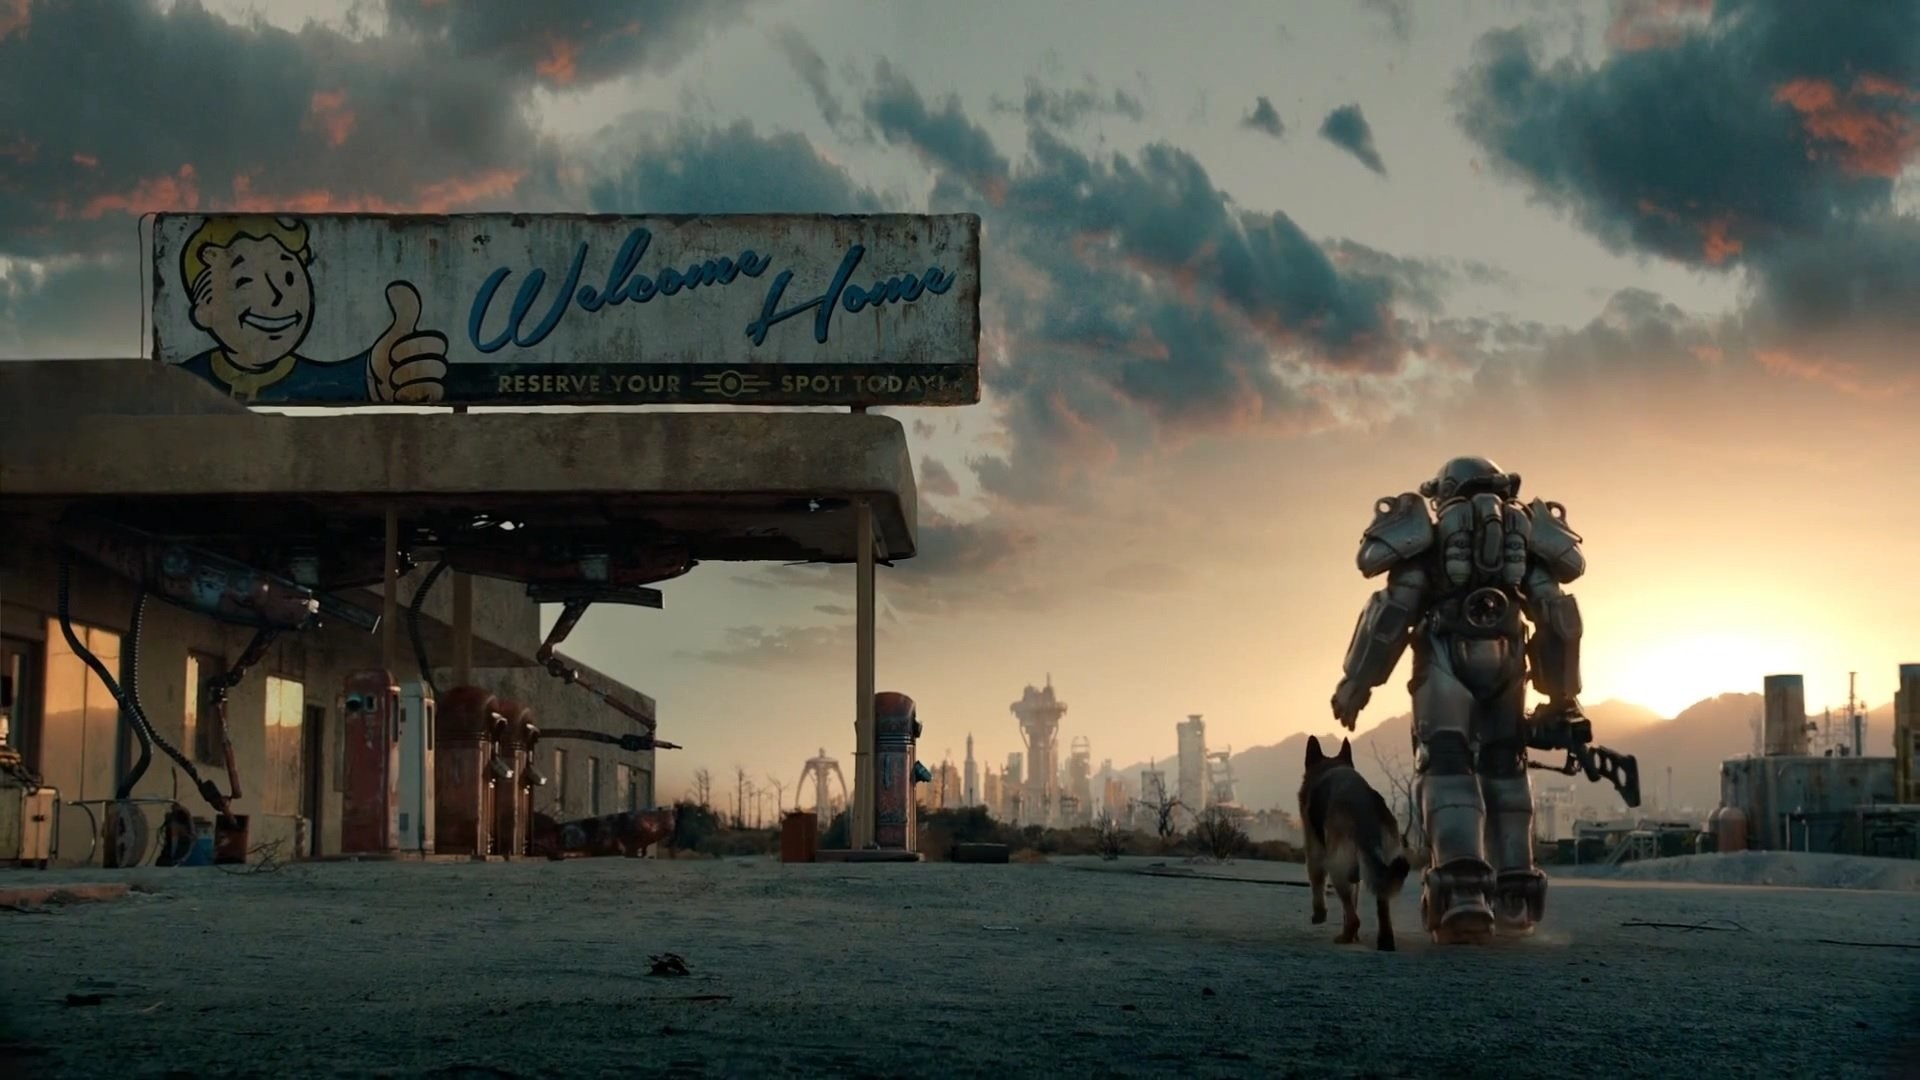 Full Hd Wallpapers 1080p Desktop Free Download Fallout 4 Wallpaper 1920x1080 77 Images